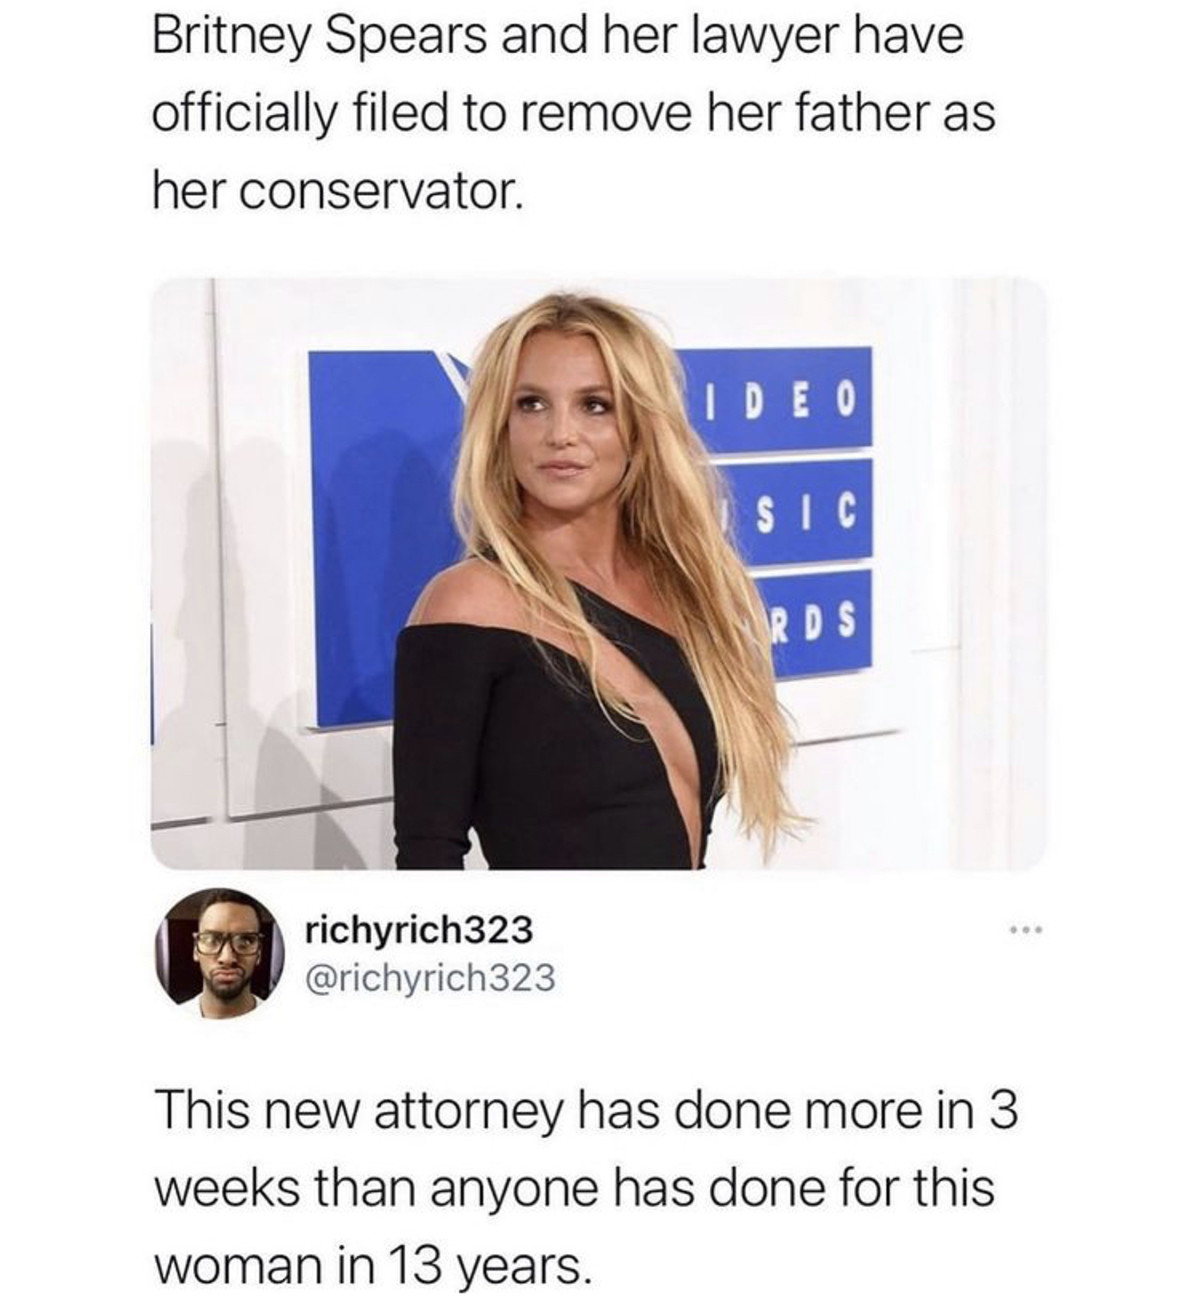 upstart Rat. .. I dont give a about Britney or celebrities in general, HOWEVER the legal shenanigans going on with her father and the courts is something that should be investi